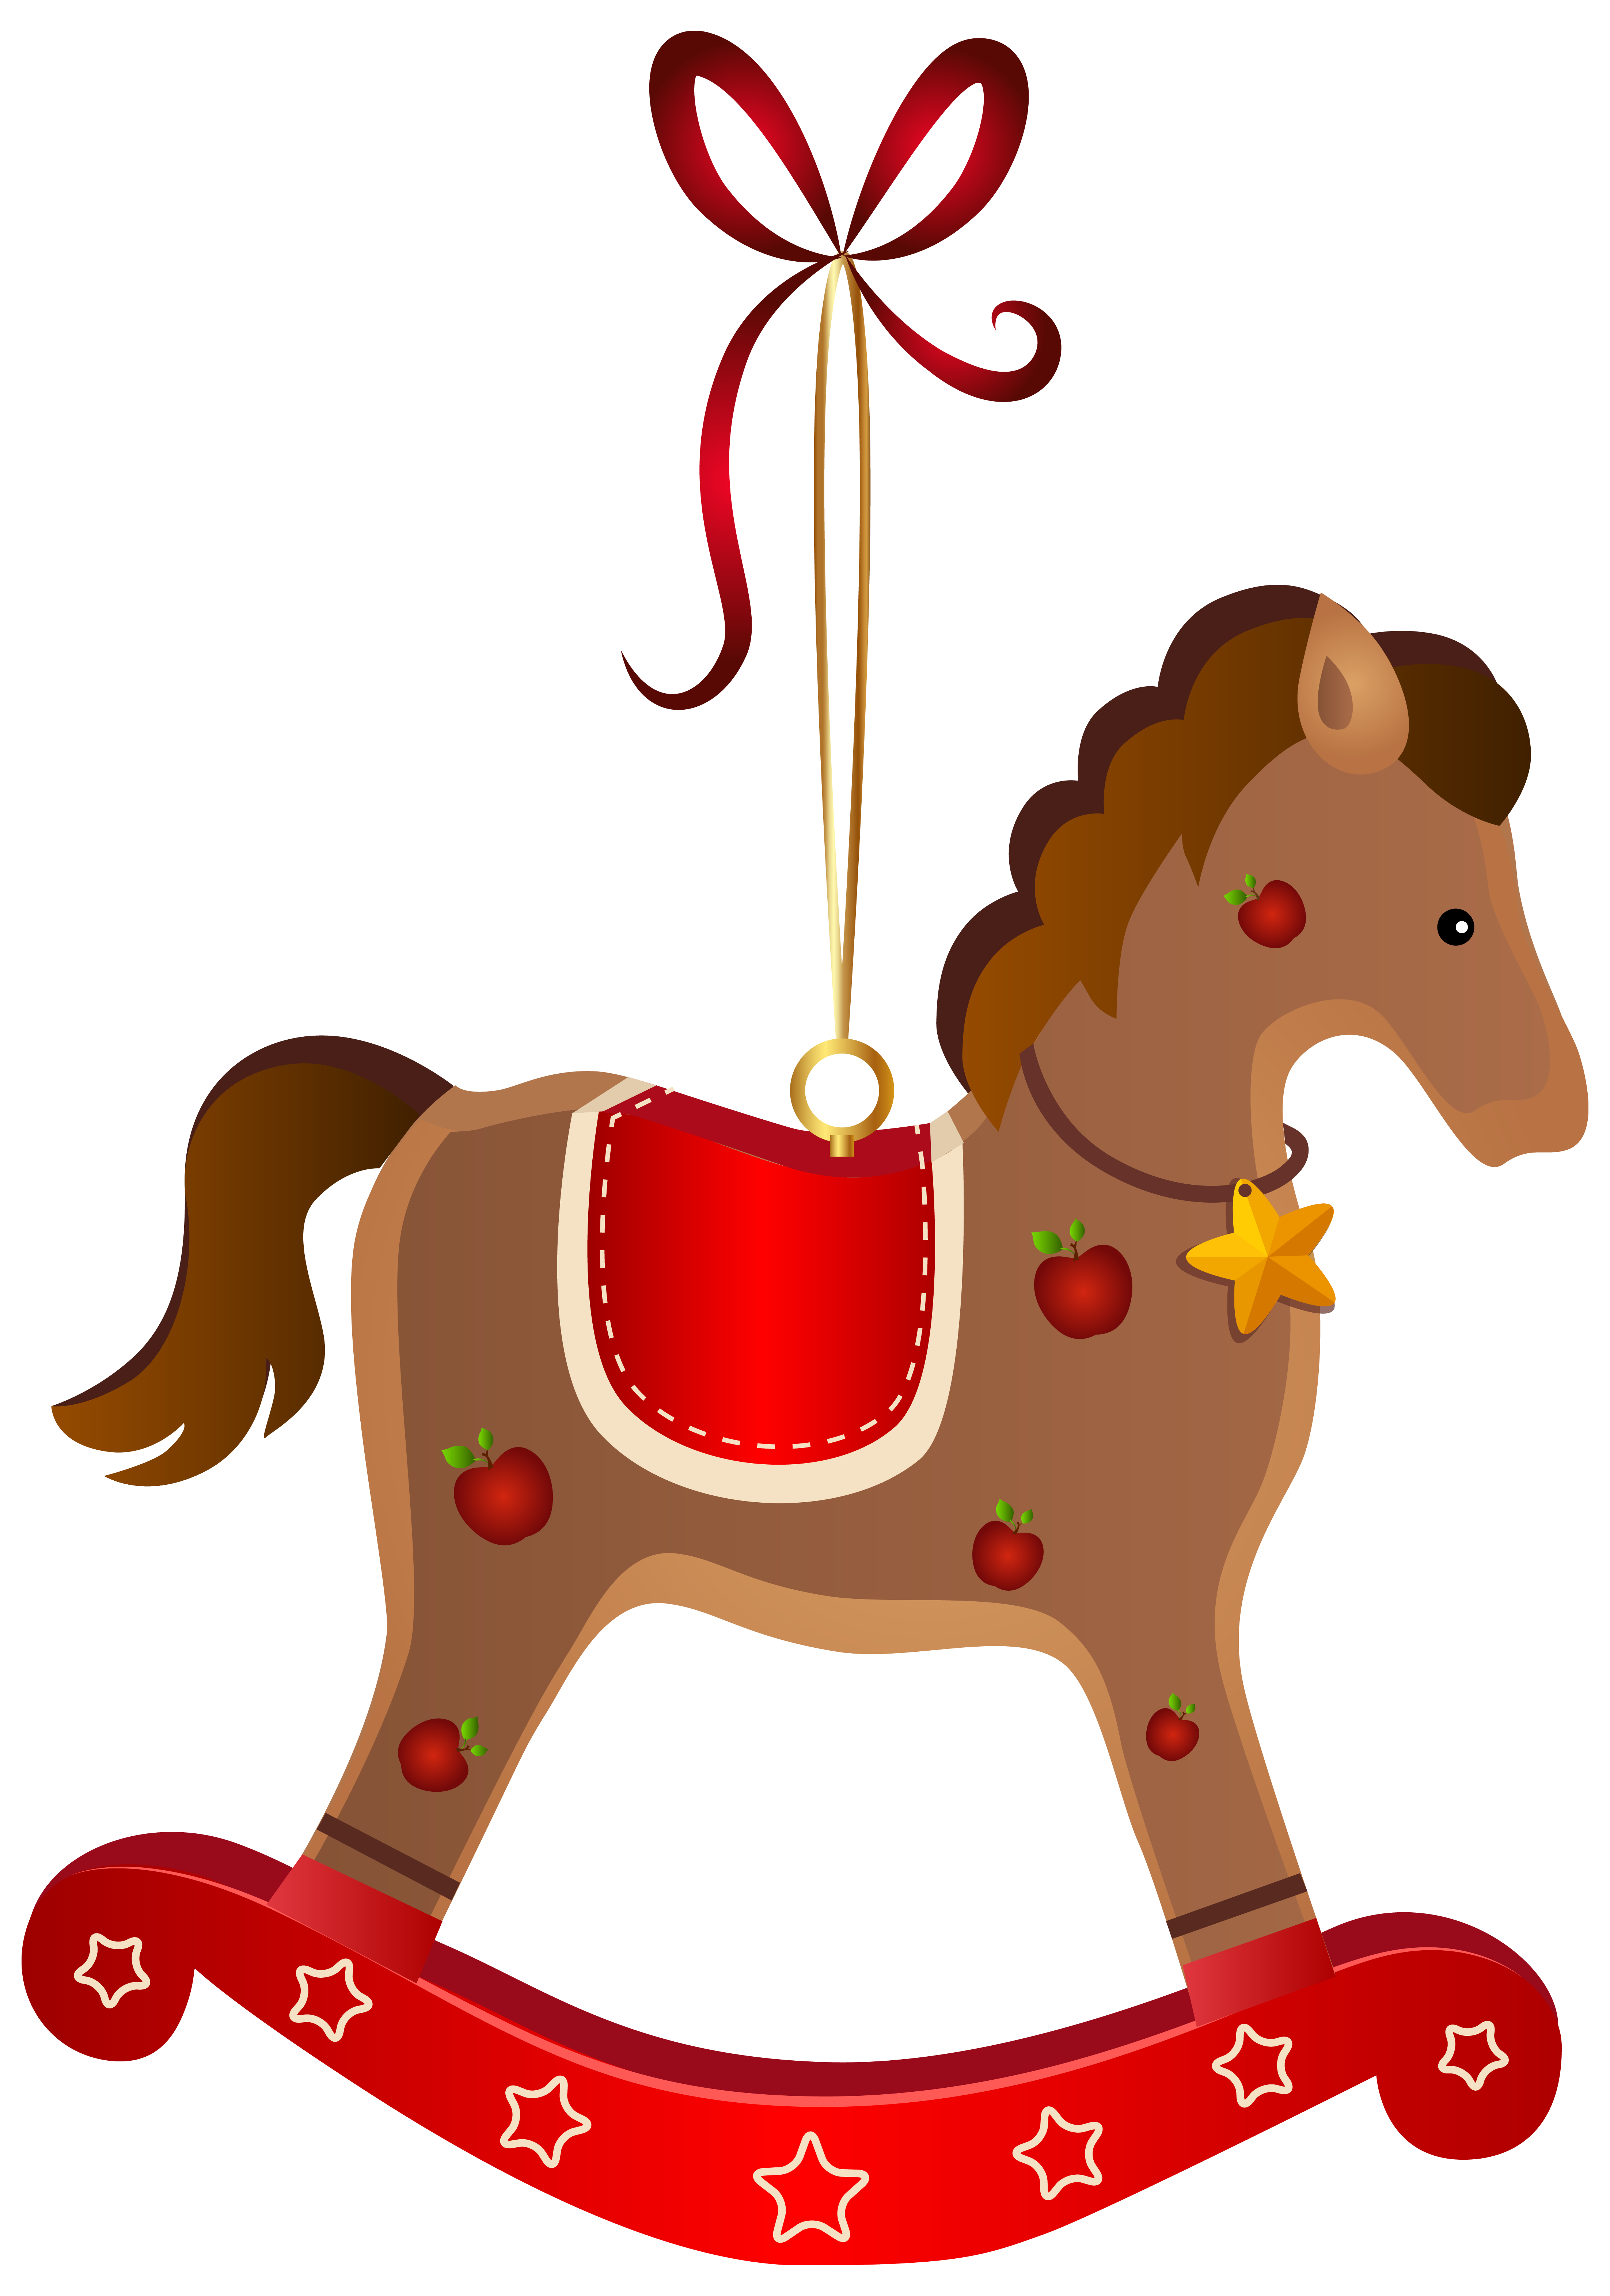 Christmas horse clipart stock Rocking Horse Christmas Ornament Transparent PNG Clip Art Image ... stock